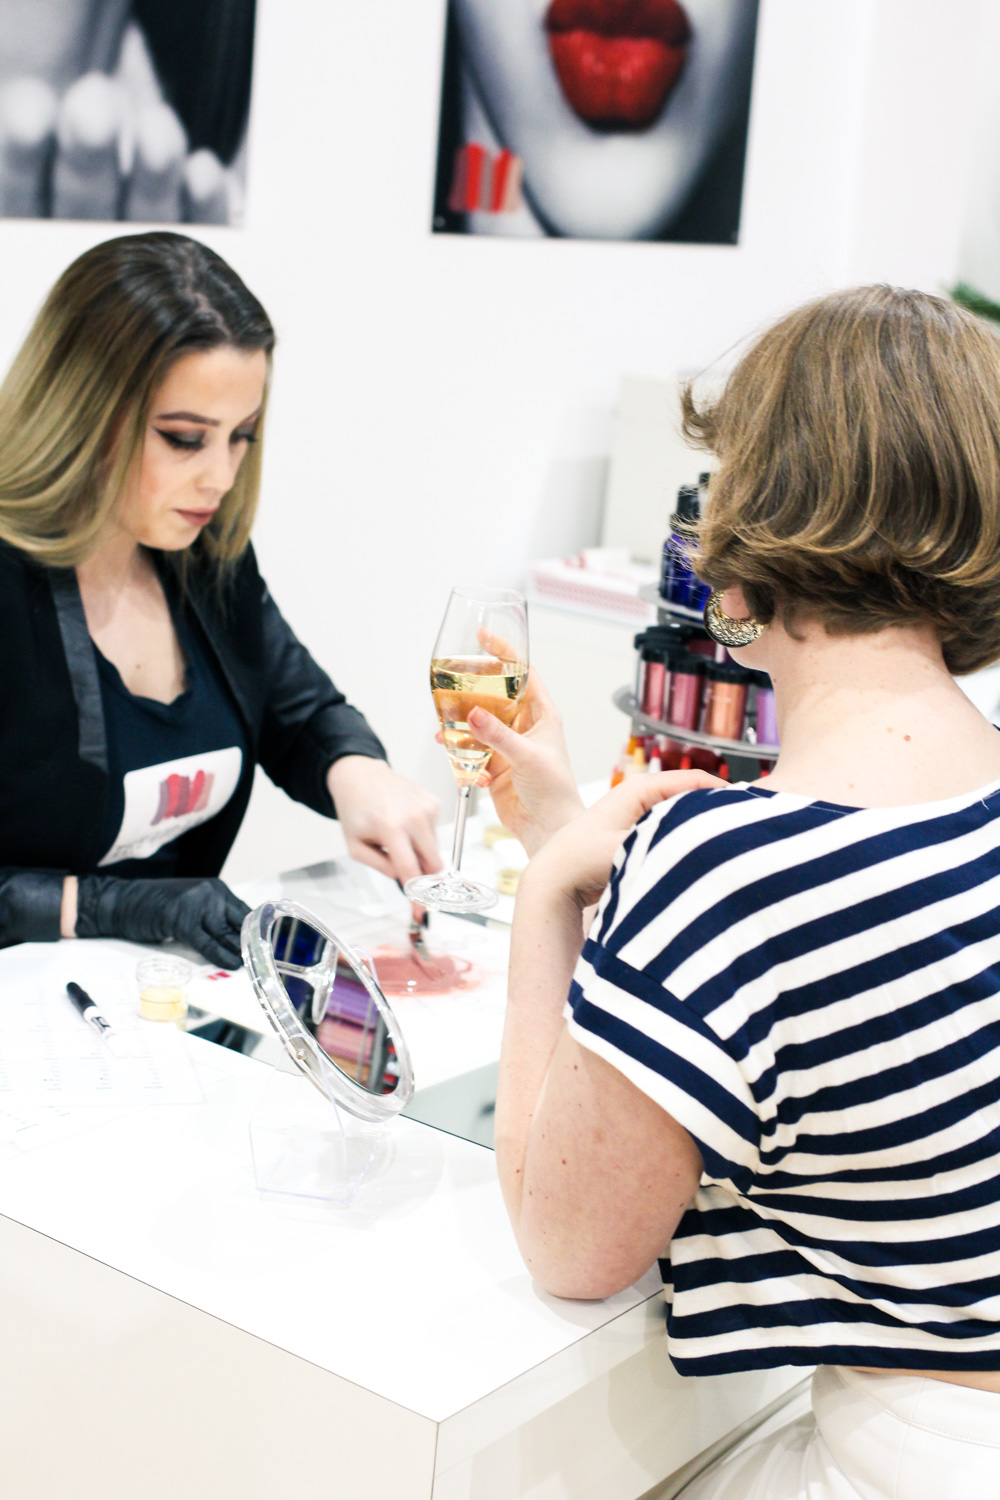 @findingfemme checks out The Lip Lab in Ballarat to get a custom made lipstick